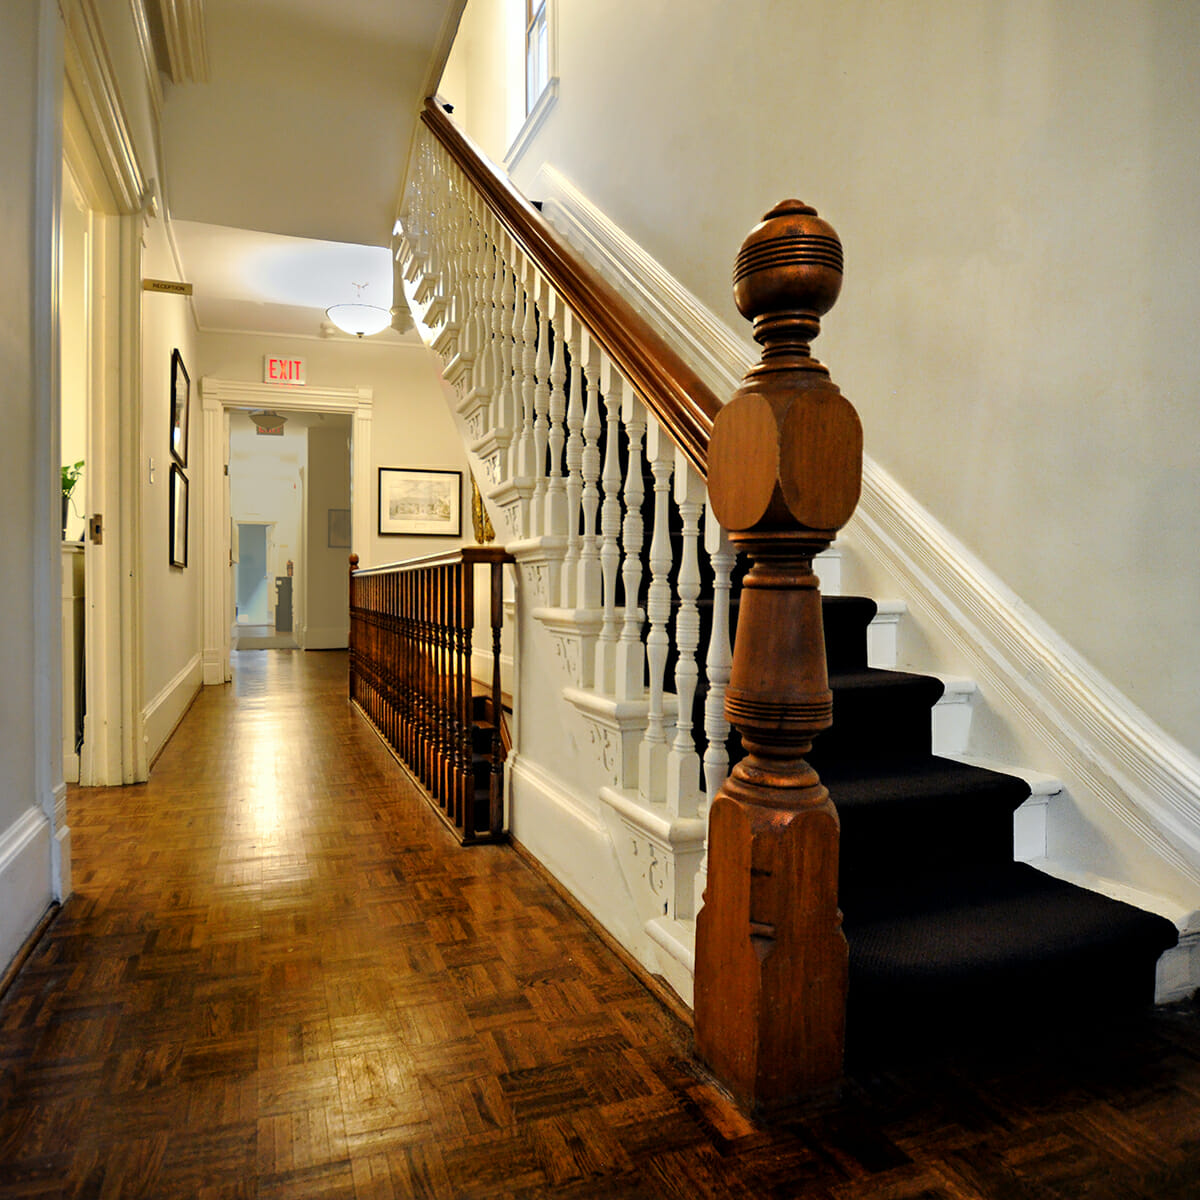 Staircase and hallway at Wright Centre entrance.